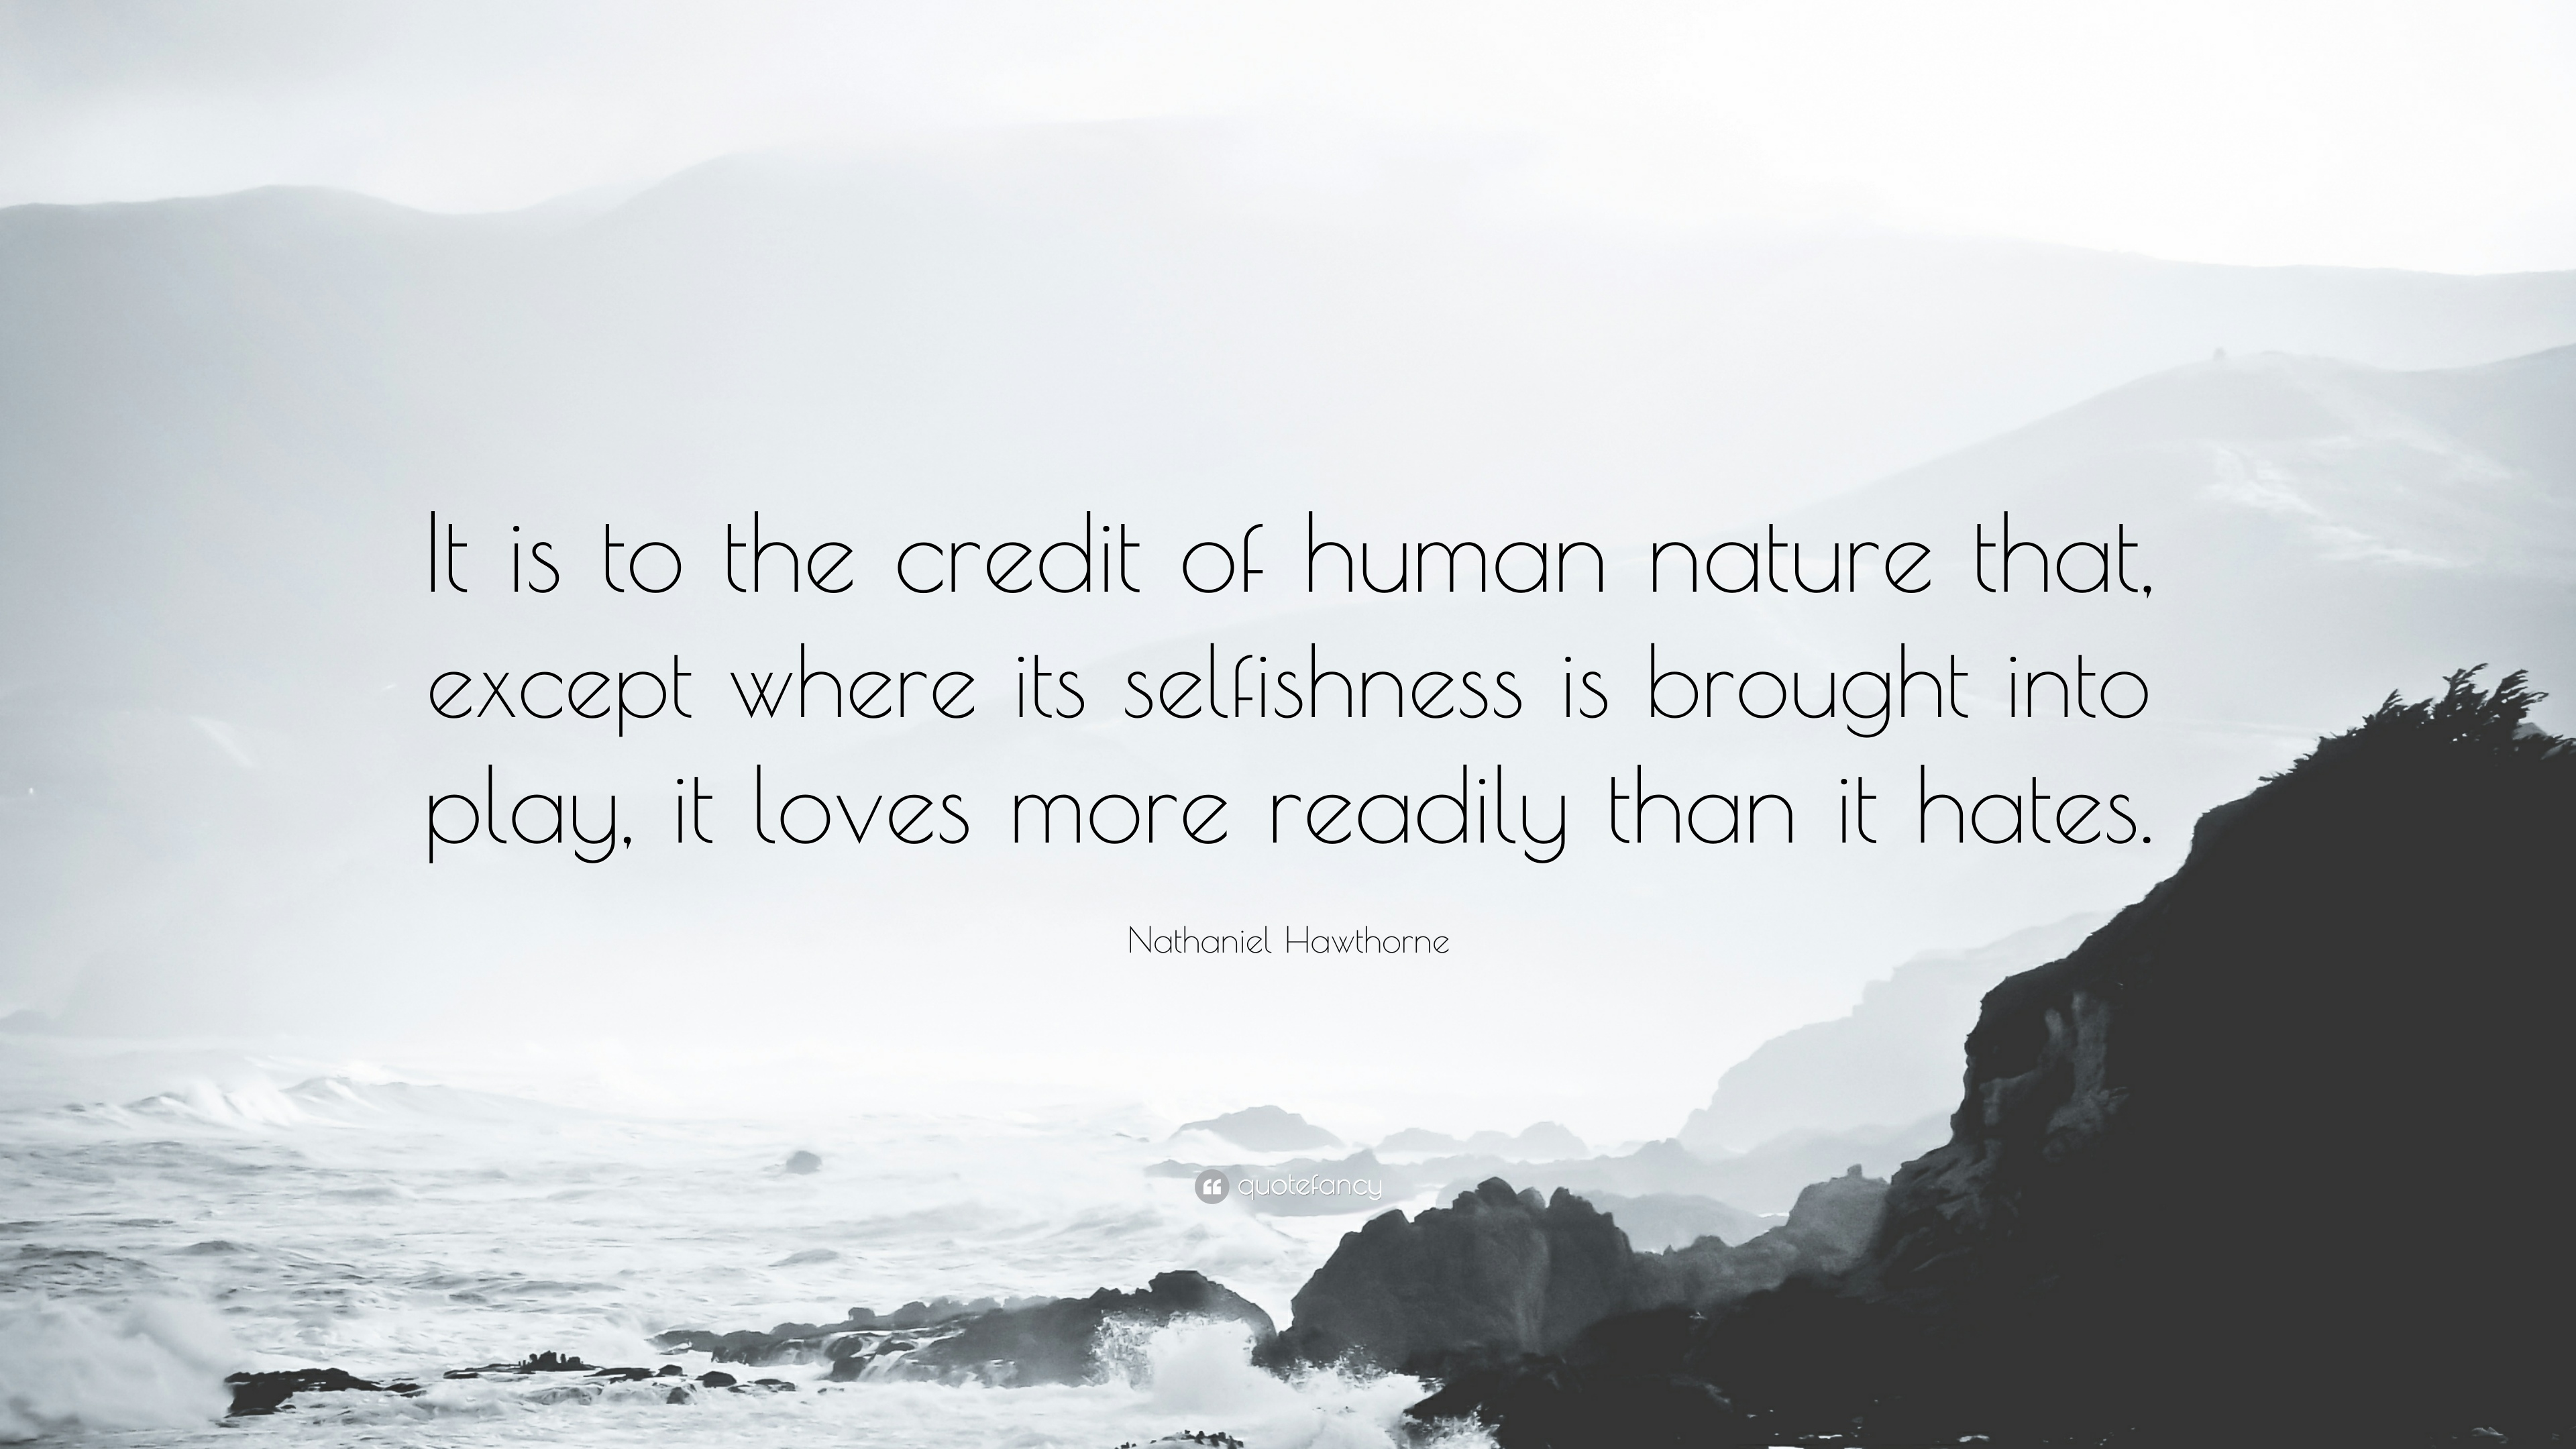 Hawthorne Quotes On Human Nature